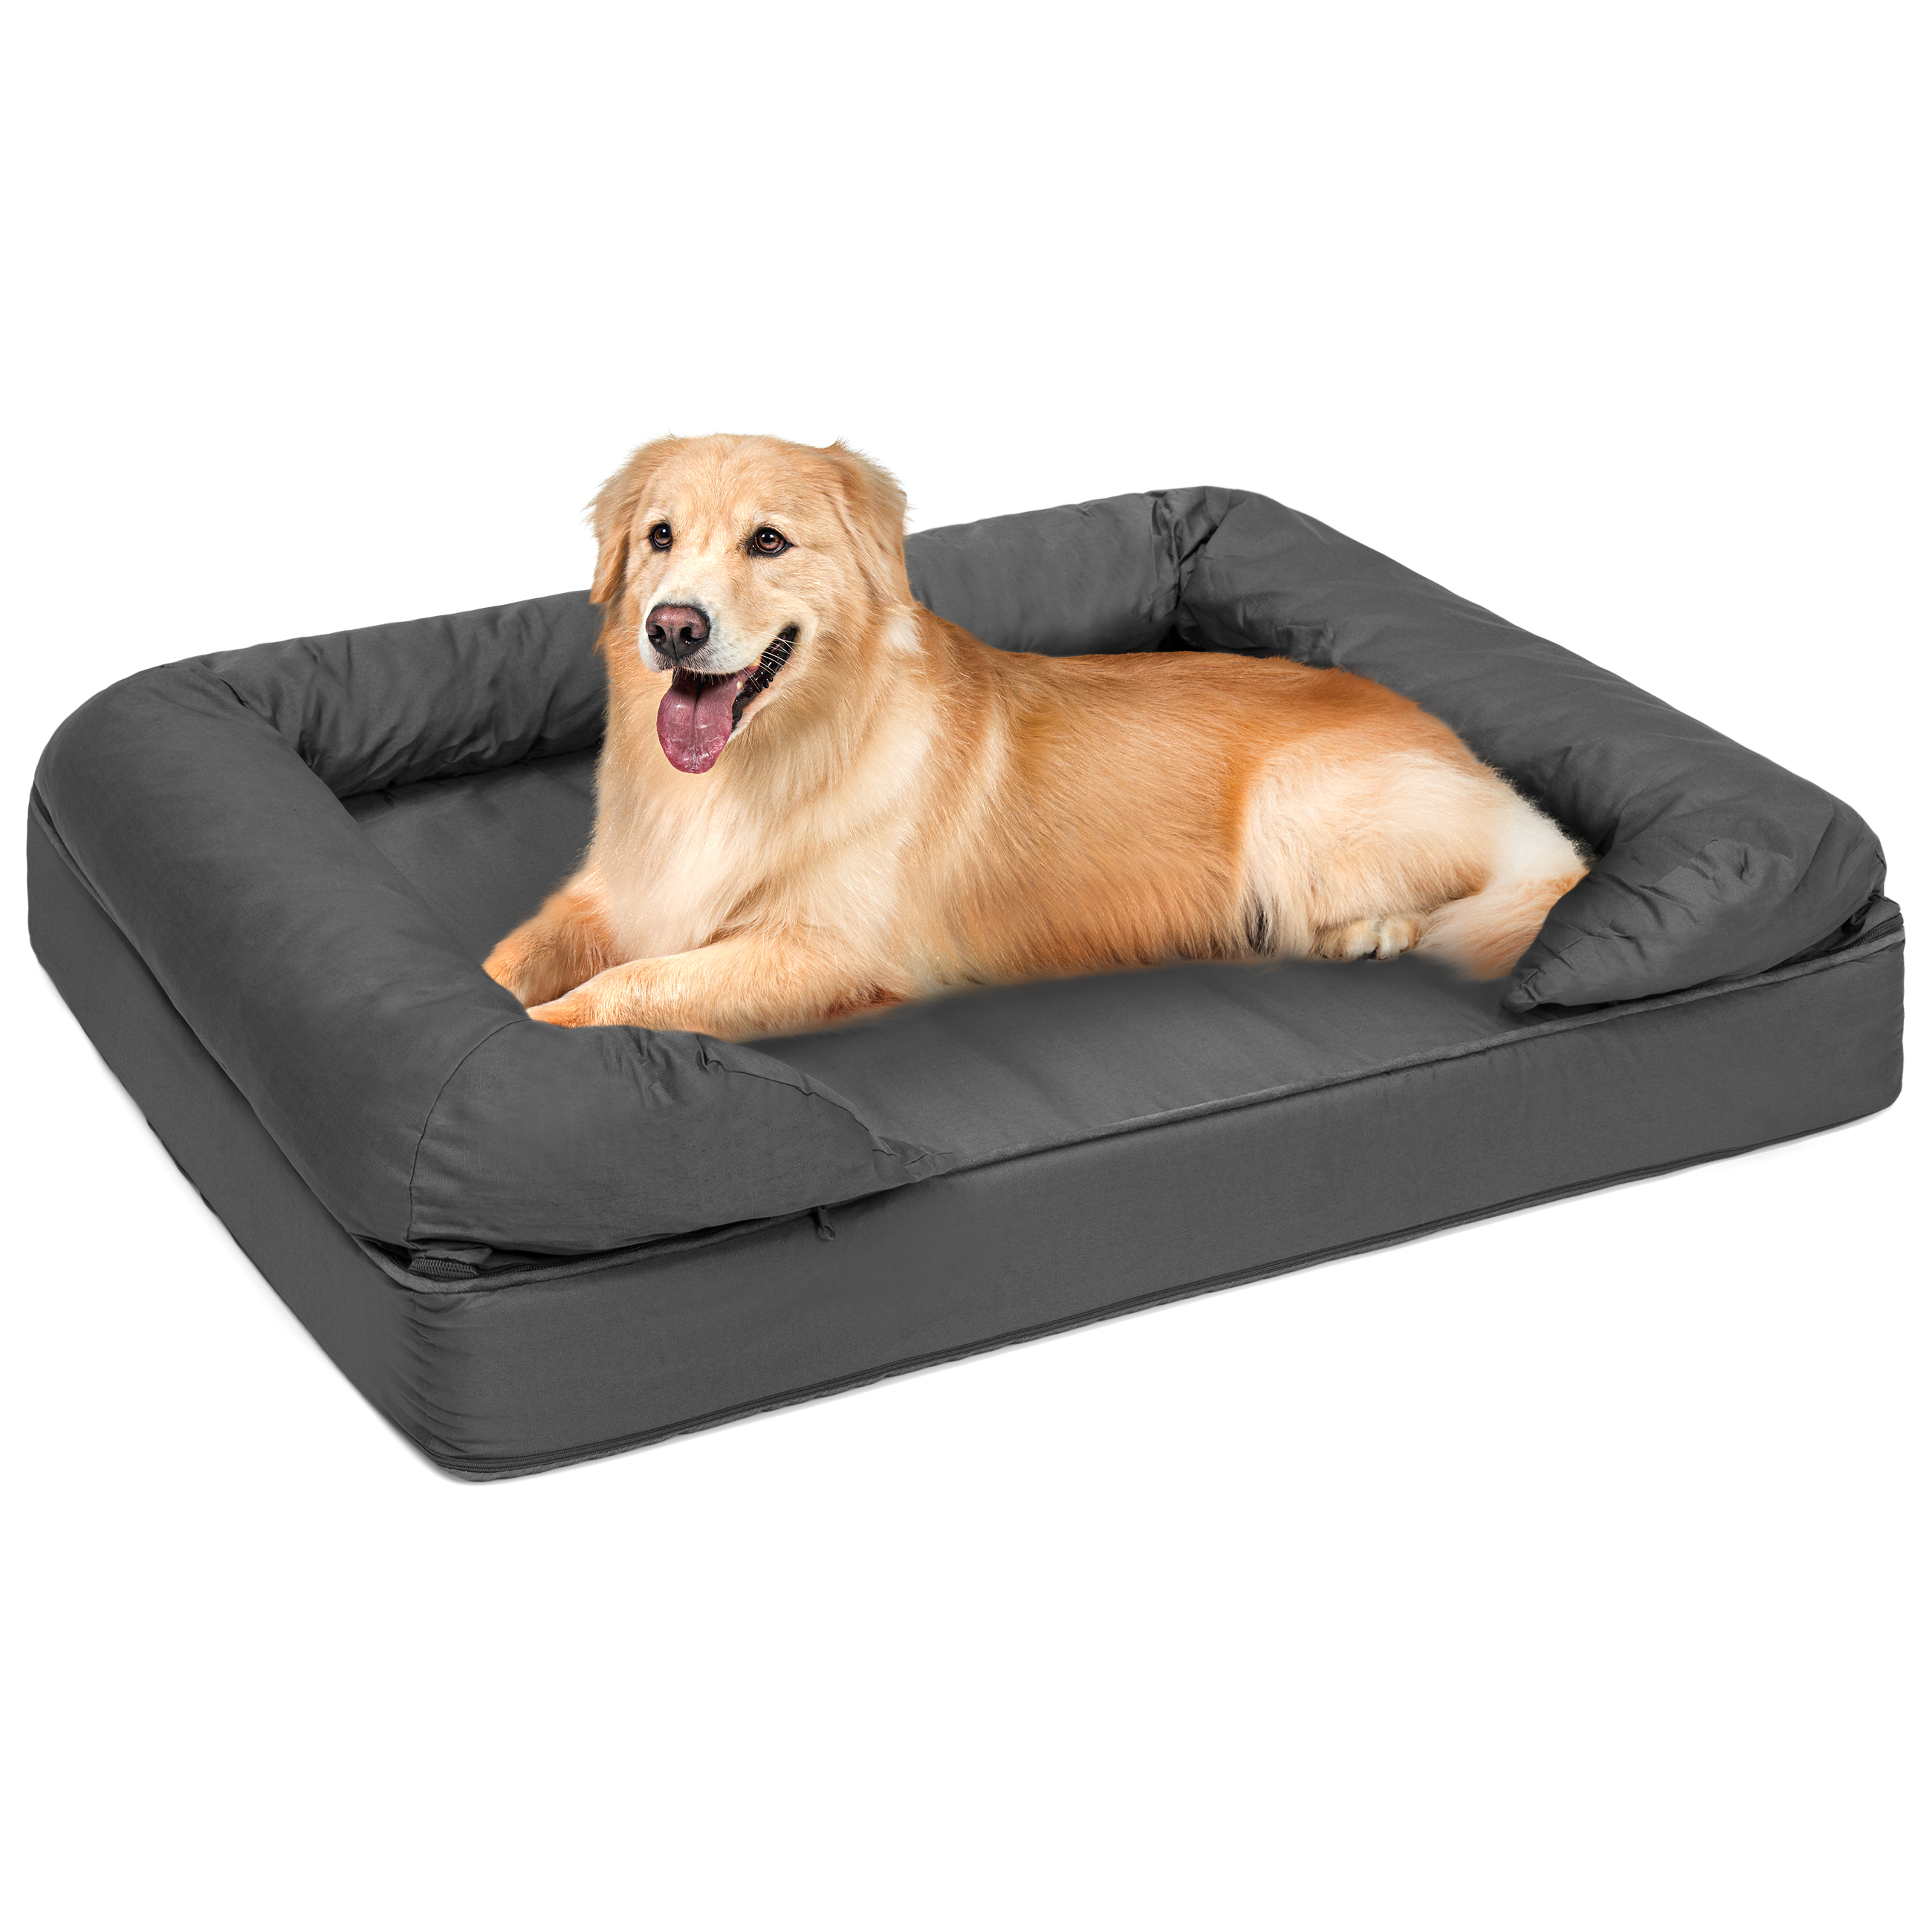 Best Choice Products Orthopedic Memory Foam Pet Sofa Bed, Large, Gray